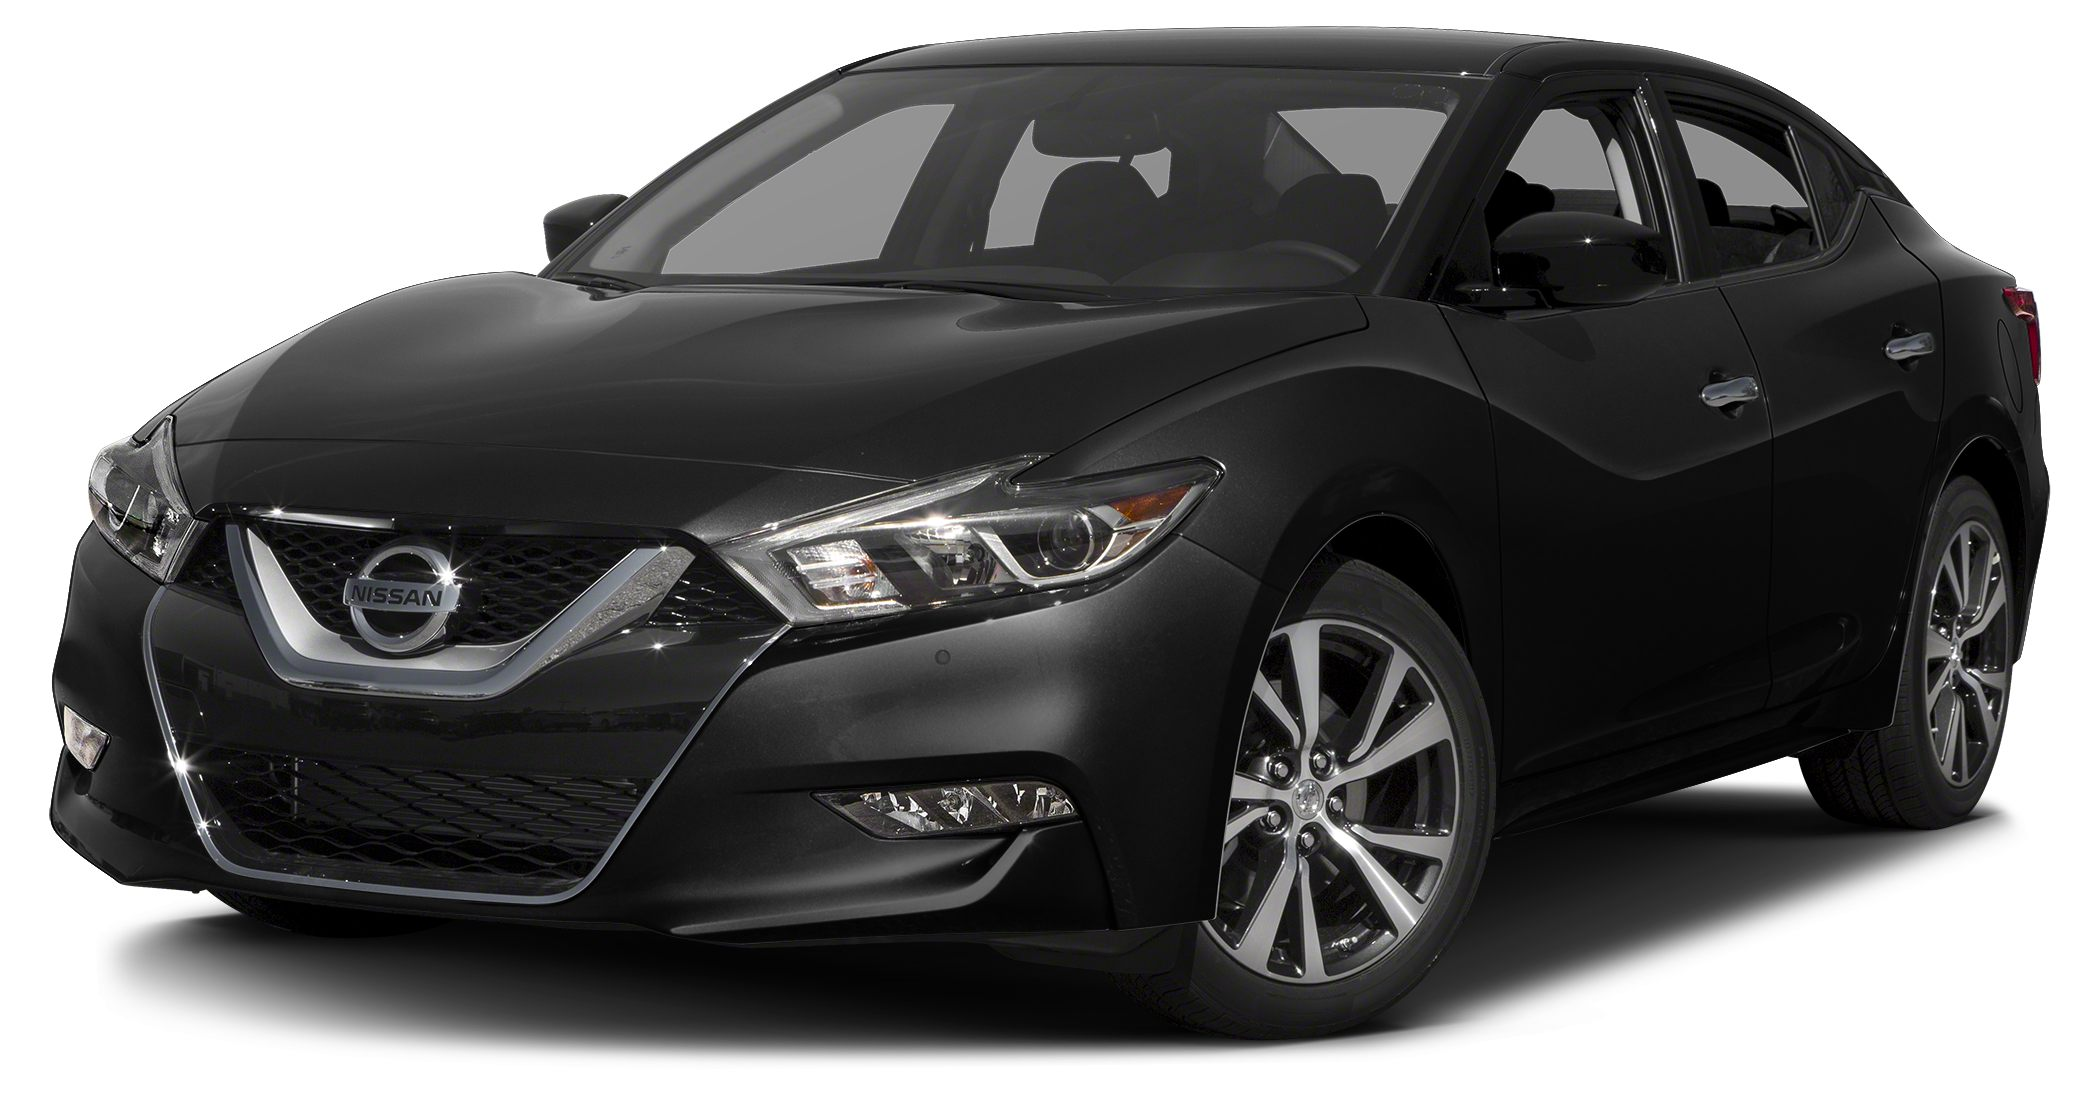 2017 Nissan Maxima 35 S Miles 7Color Black Stock 7170345 VIN 1N4AA6APXHC410868